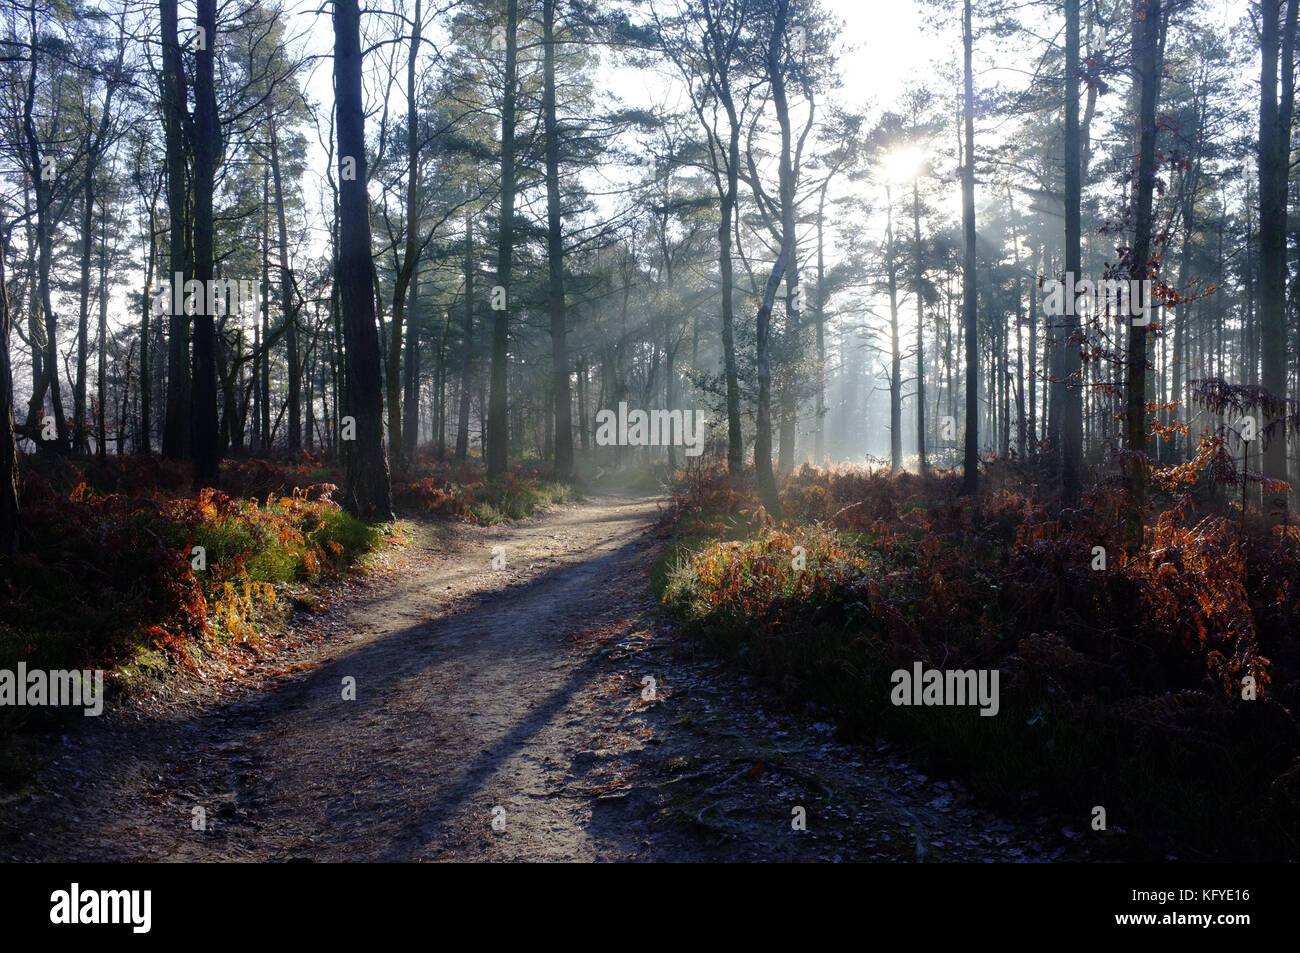 The rays of the morning sun shine through a misty forest in Surrey. - Stock Image